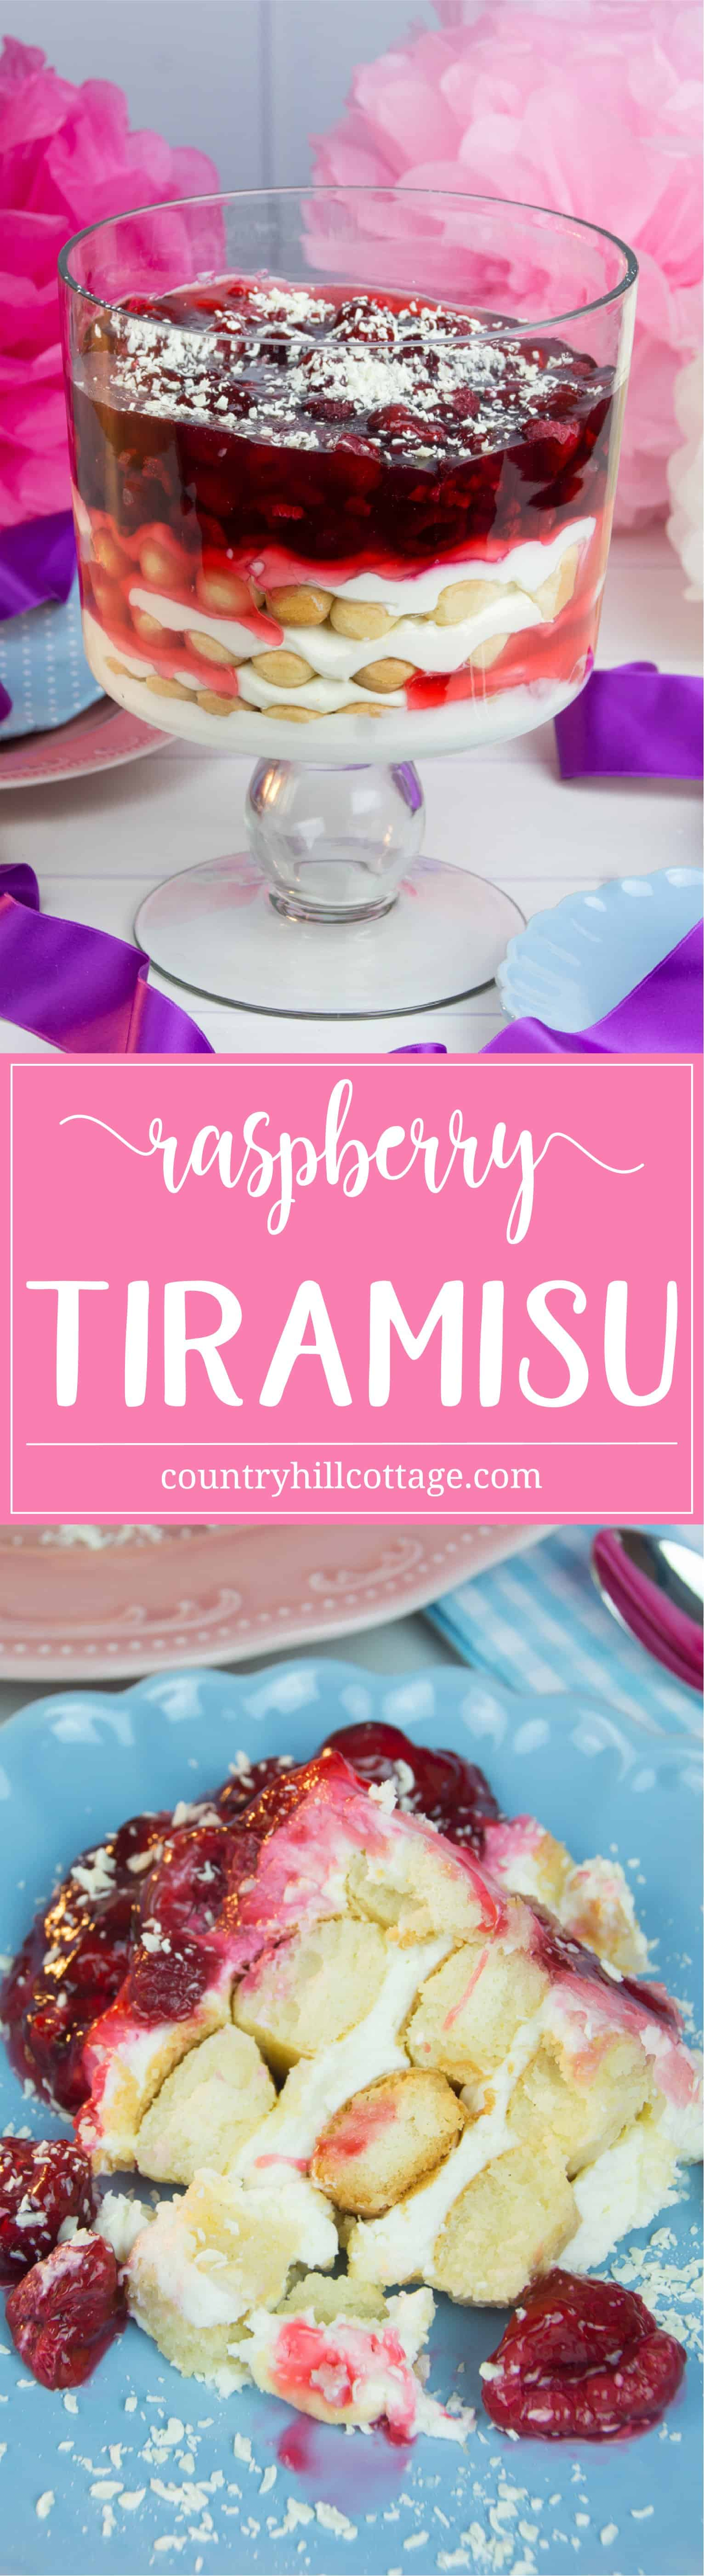 Our raspberry tiramisu is a great dessert for holidays and always a favourite among kids. The tiramisu is made with layers of rich and creamy mascarpone and cream cheese mix, sweet sponge fingers, tart raspberry and refreshing raspberry jello. We love to serve this treat at parties and wins over the crowd every time. #raspberry #tiramisu #dessert #recipe | countryhillcottage.com